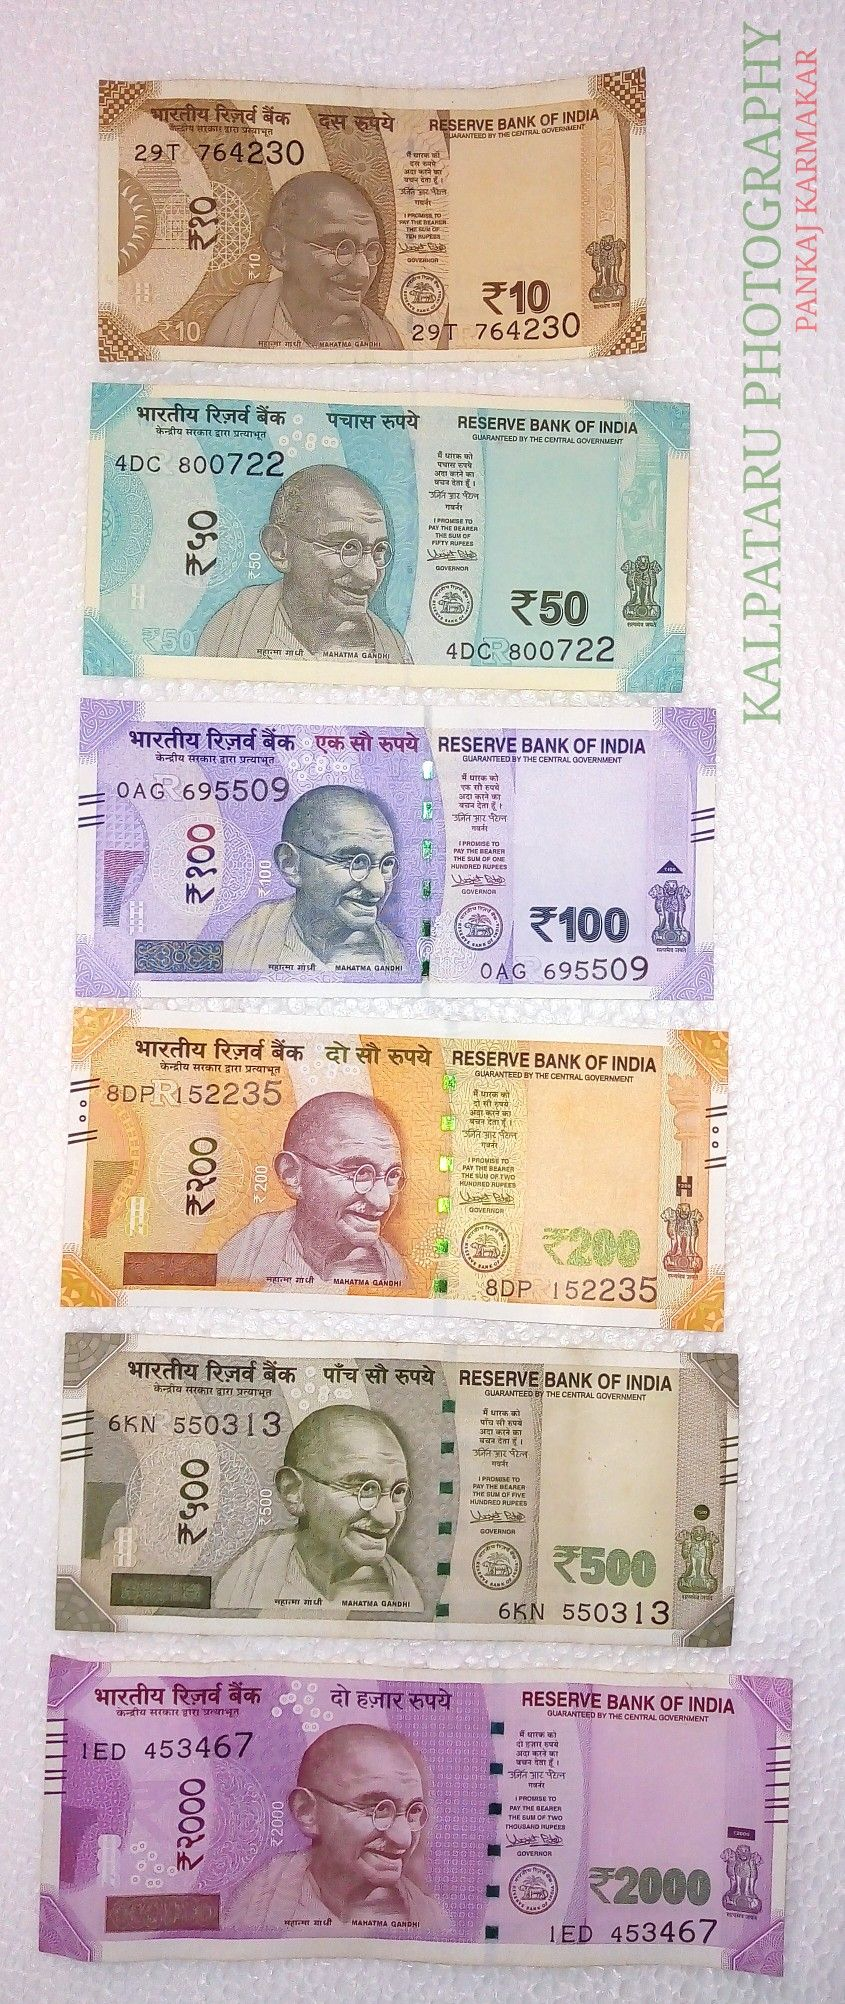 The New Indian Currency Photography By Pankaj Karmakar